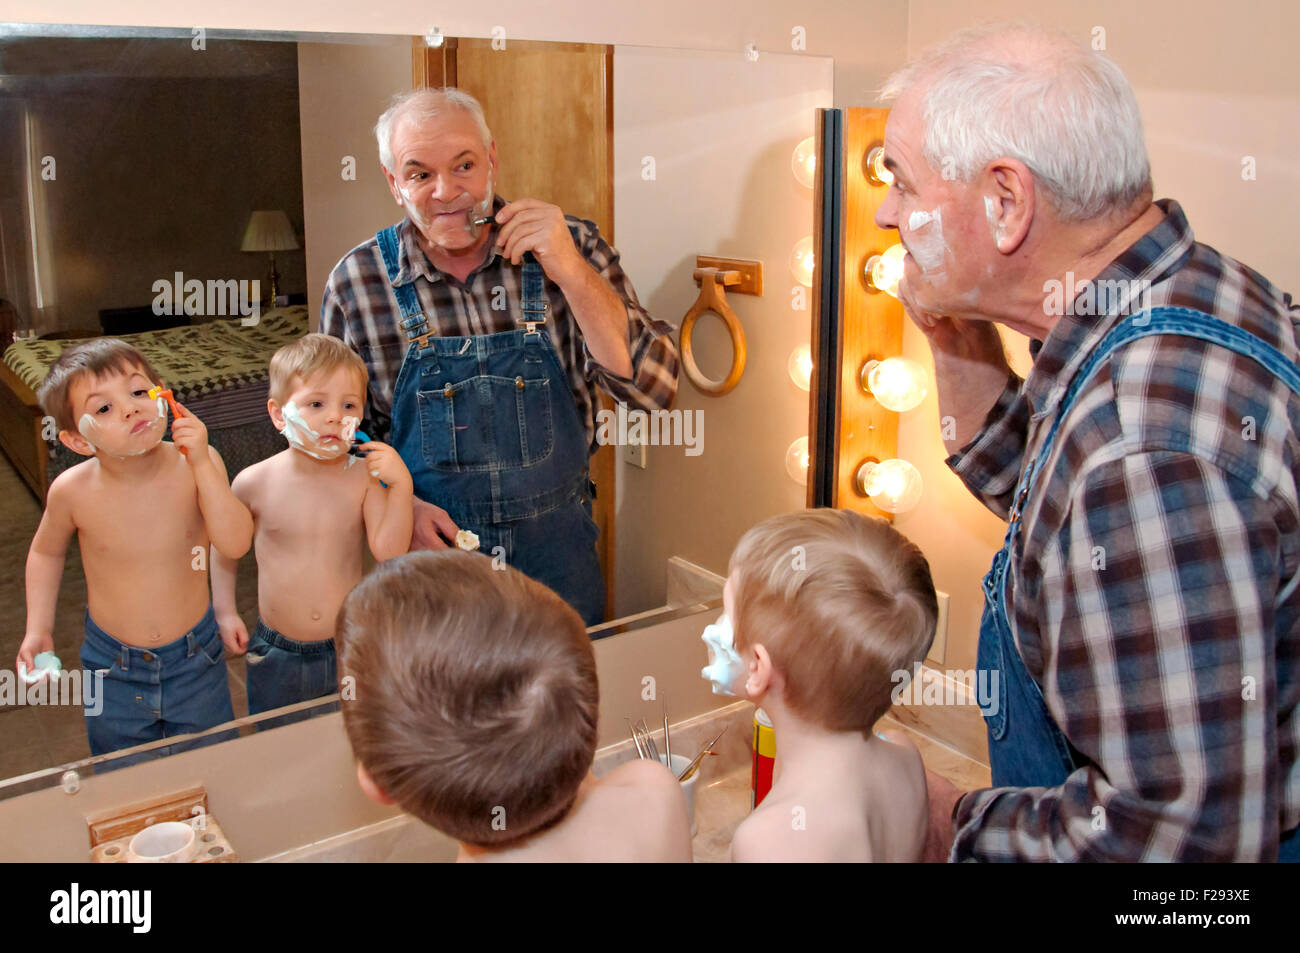 Grandfather teaching grandsons to shave - Stock Image